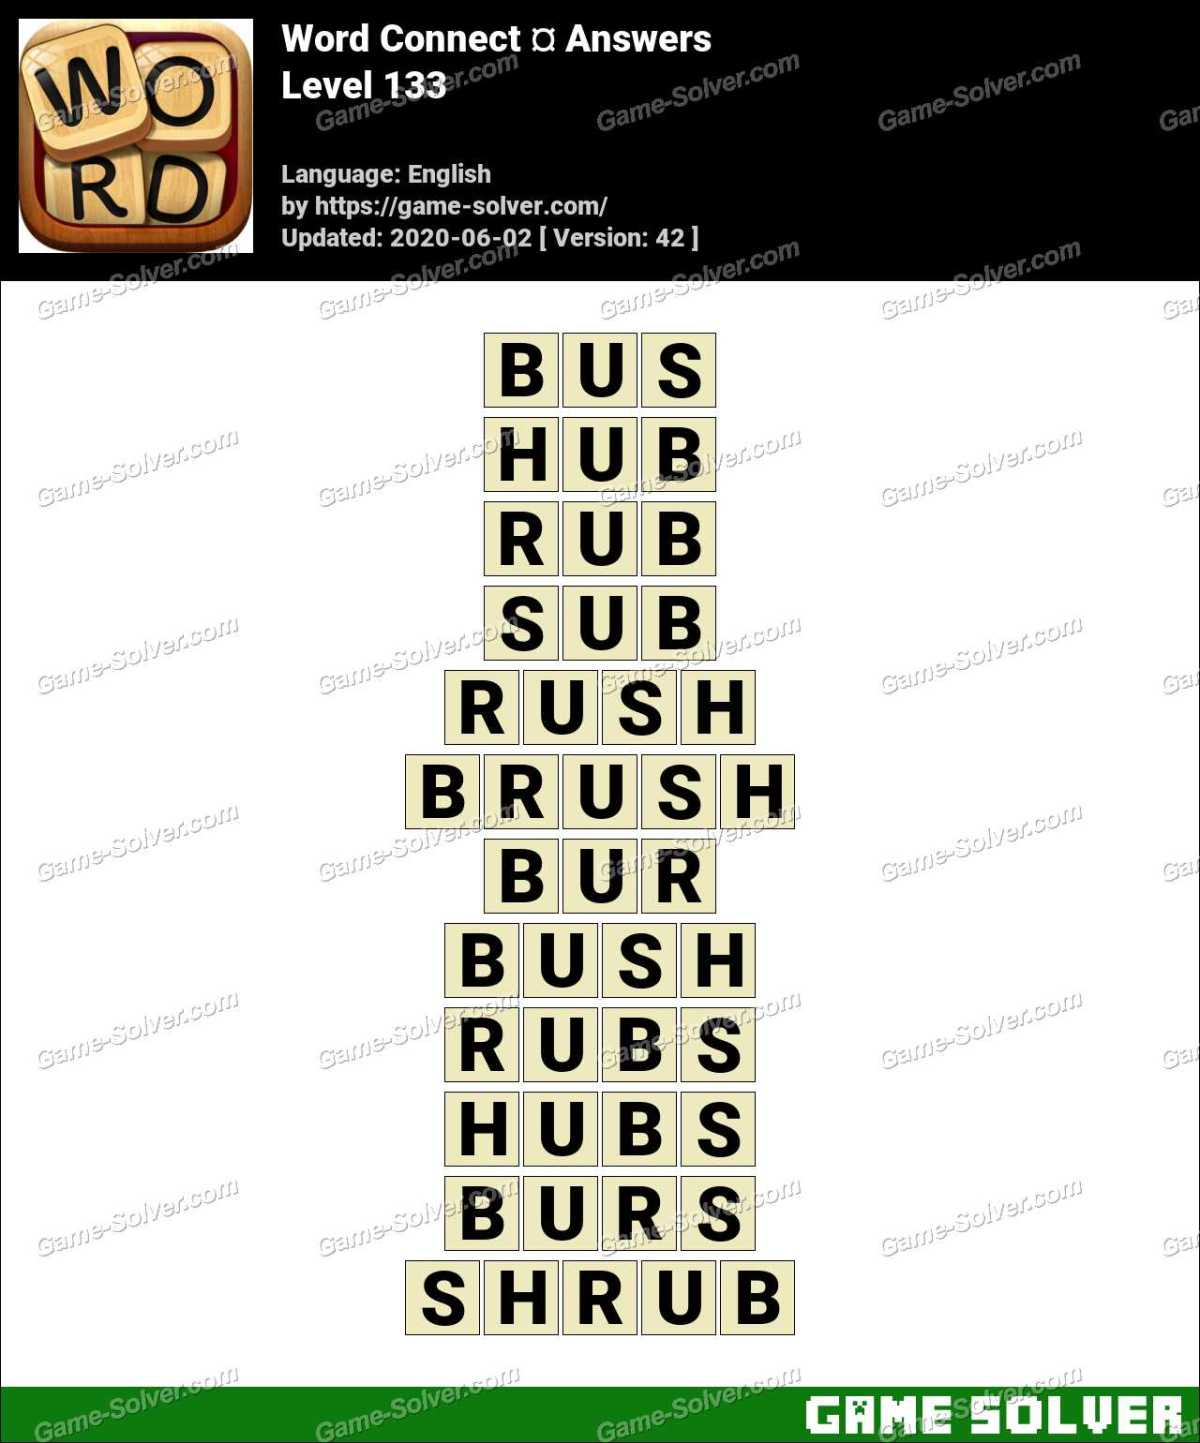 Word Connect Level 133 Answers